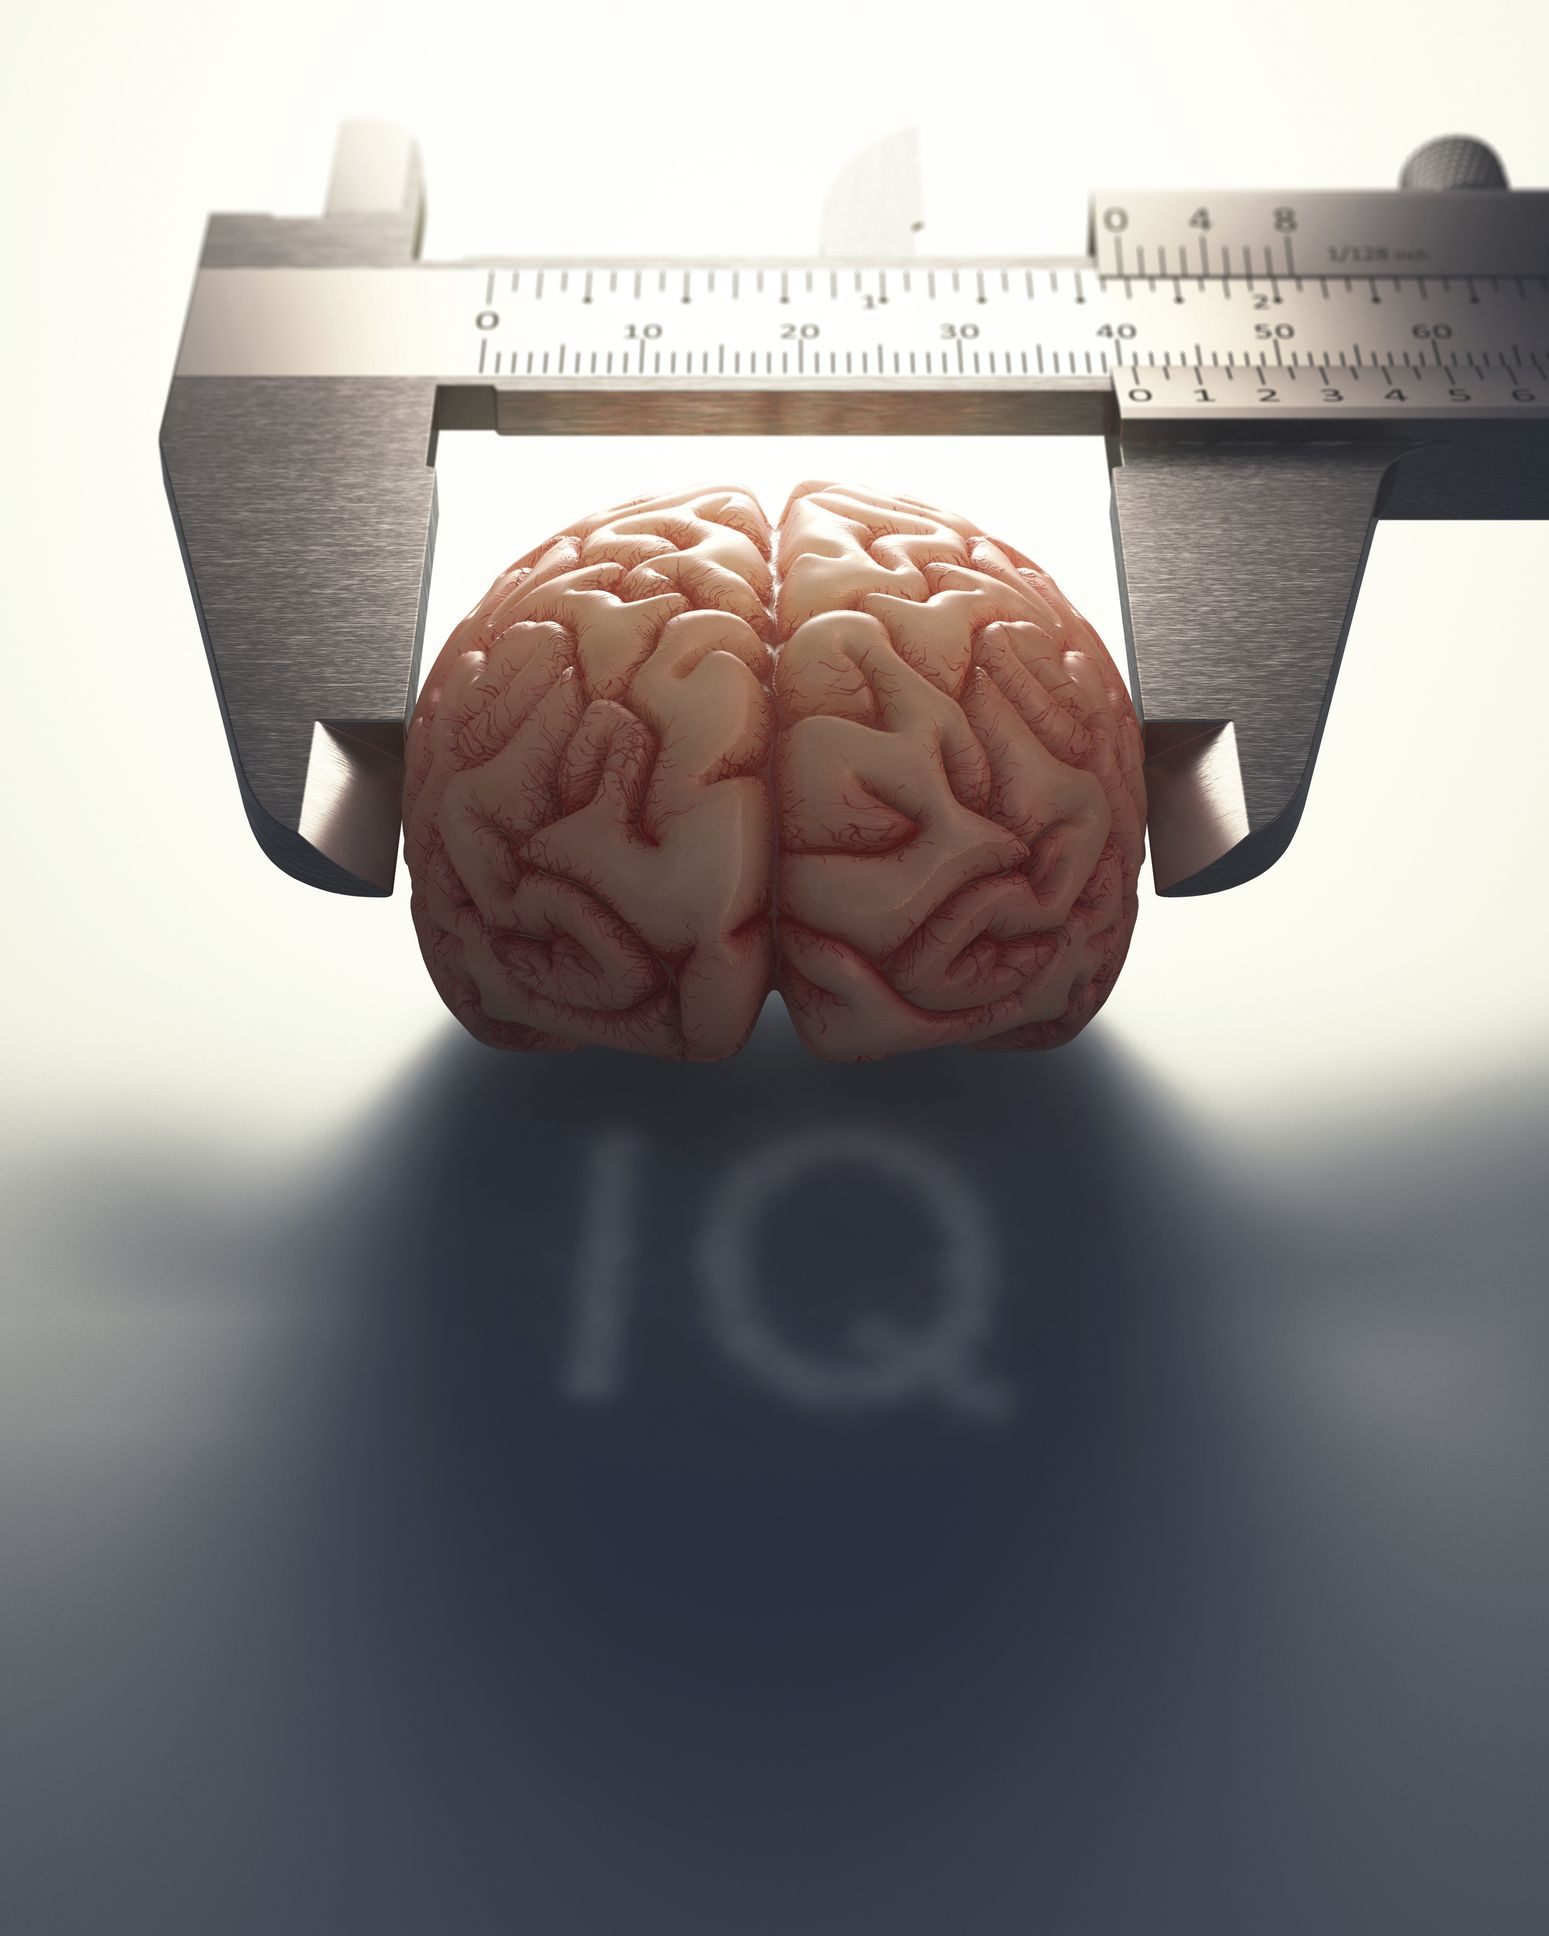 IQ tests have long been plagued by claims of cultural and